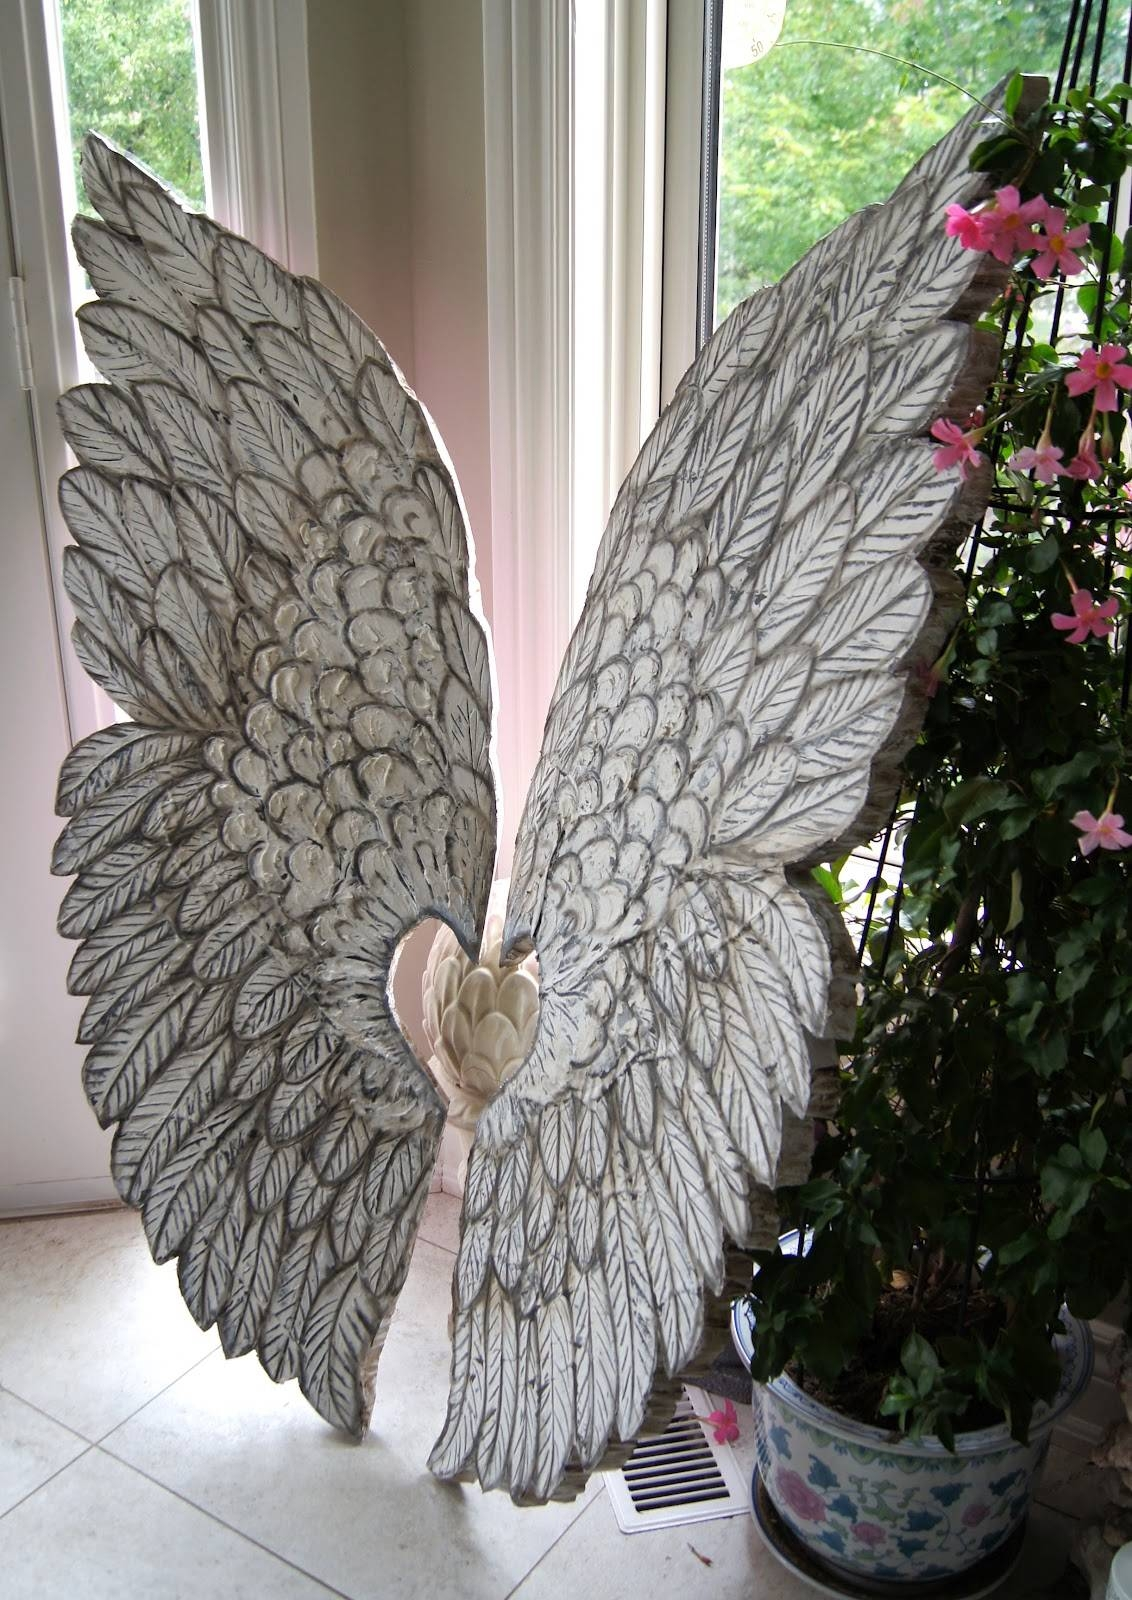 Angel Wings Wall Decor Awesome Projects Angel Wing Wall Decor Inside Latest Angel Wings Wall Art (View 6 of 20)